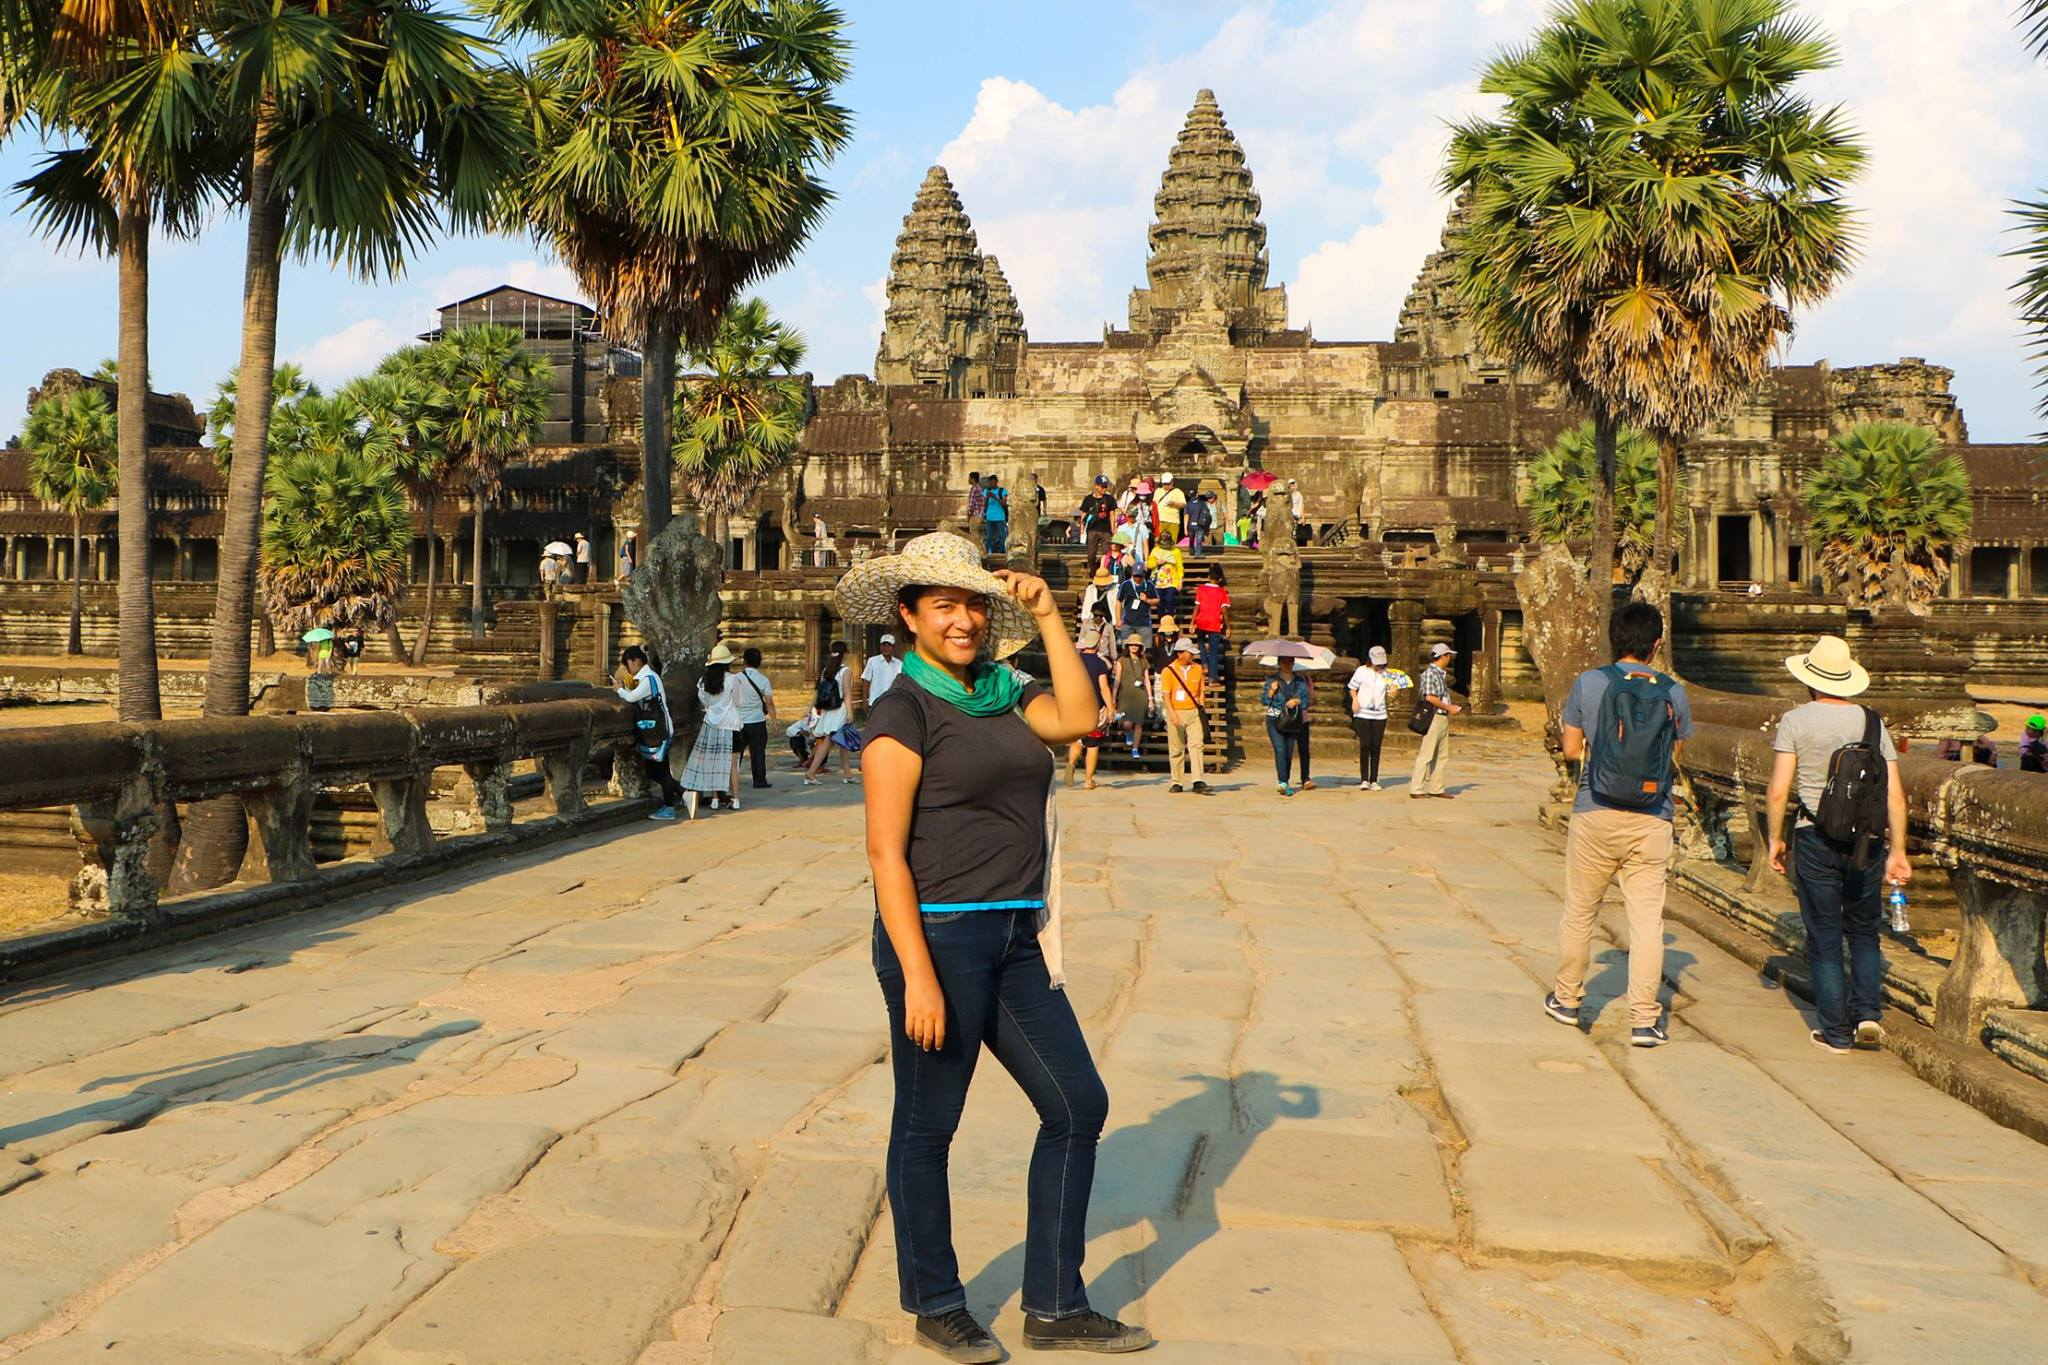 Carolina Borrás standing in front of the Angkor Wat temple in Cambodia